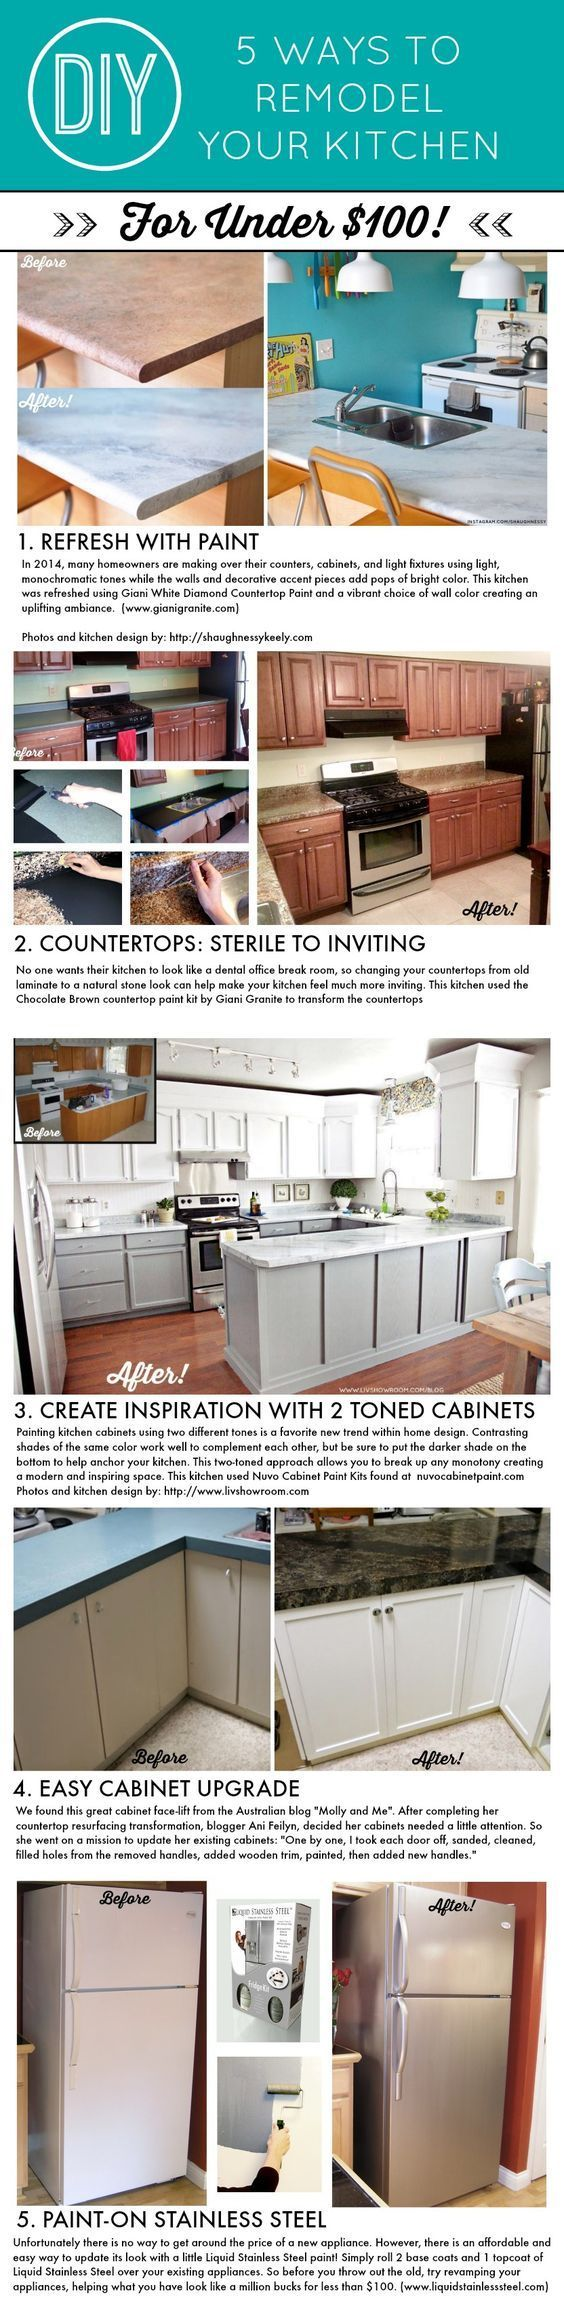 5 WAYS TO REMODEL YOUR KITCHEN FOR UNDER $100! Kitchen makeover on a ...